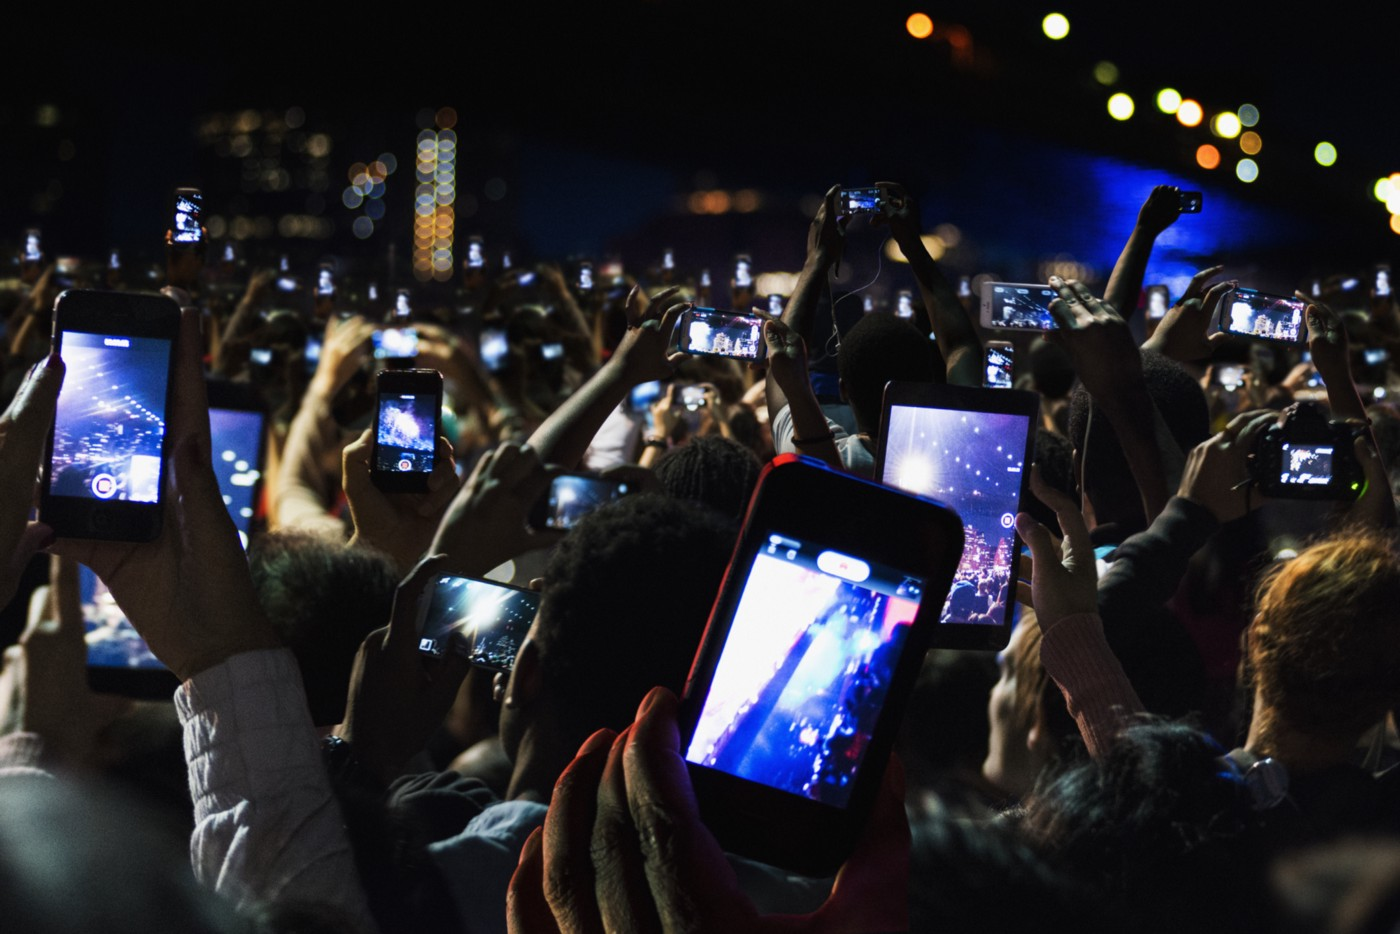 A photo of a sea of phones recording a scene at a concert at night.